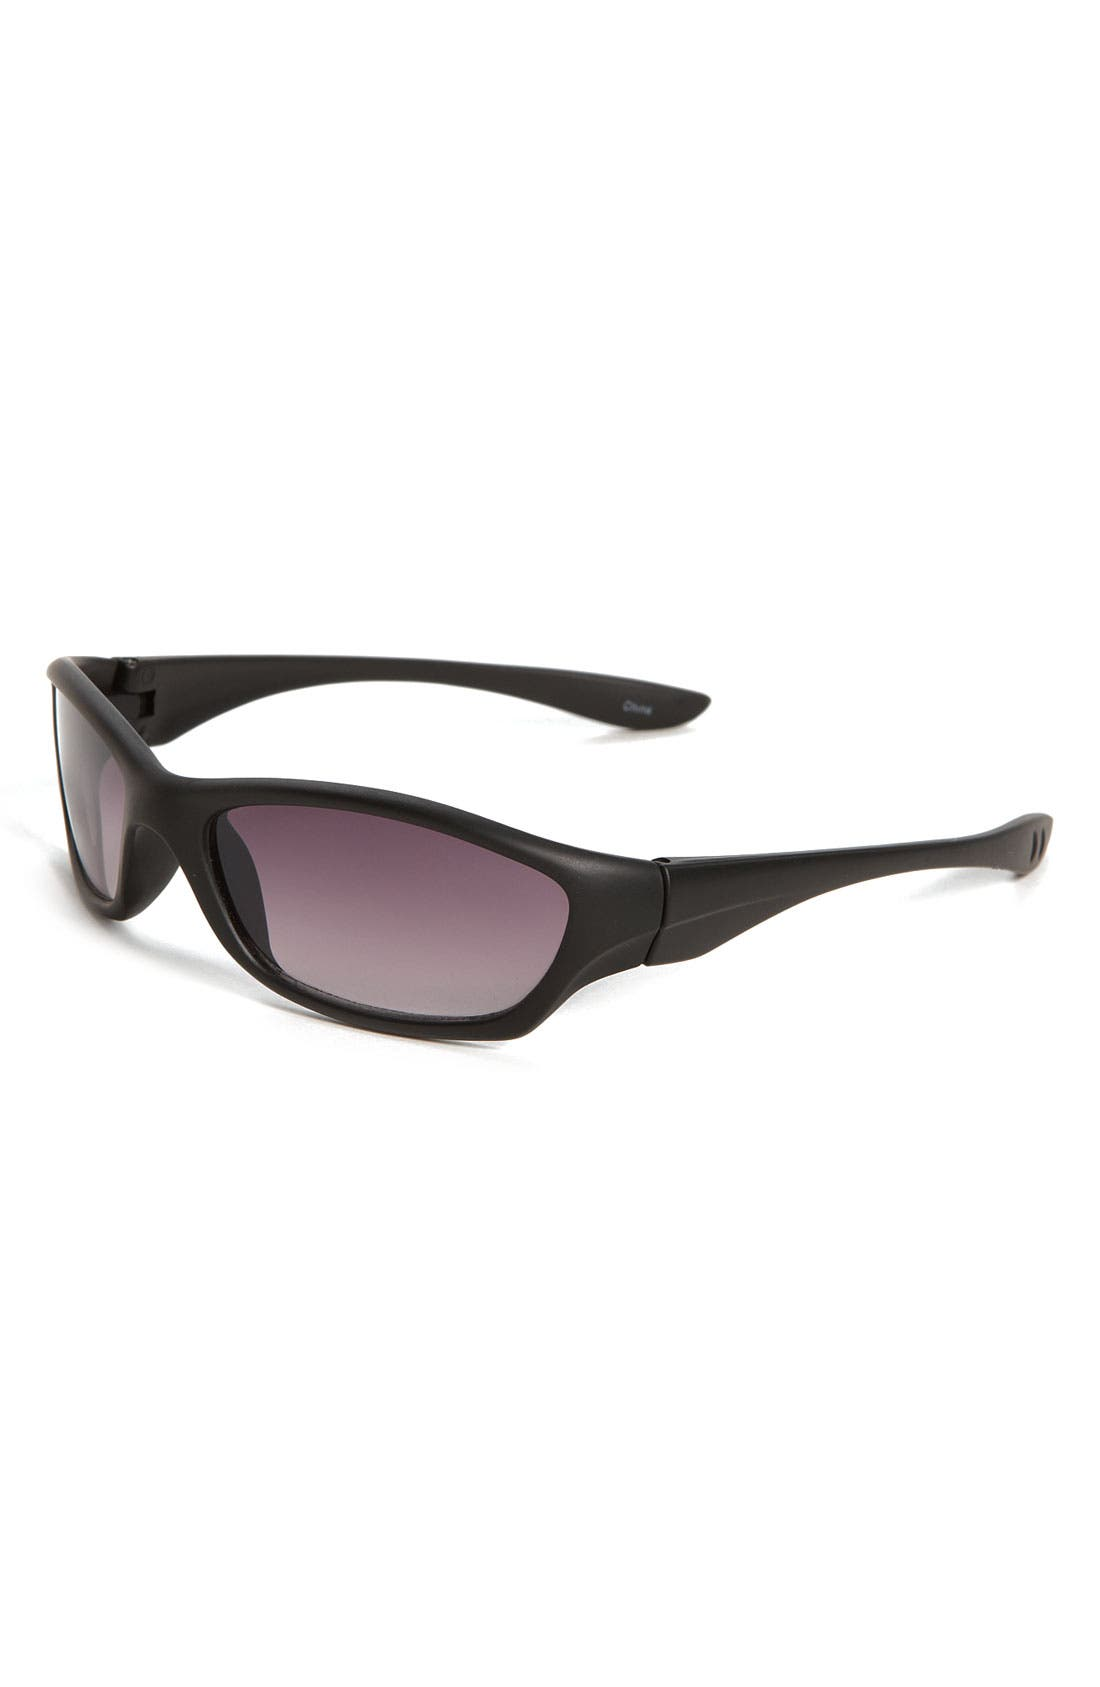 Alternate Image 1 Selected - Icon Eyewear 'Jimmy' Sunglasses (Big Boys)